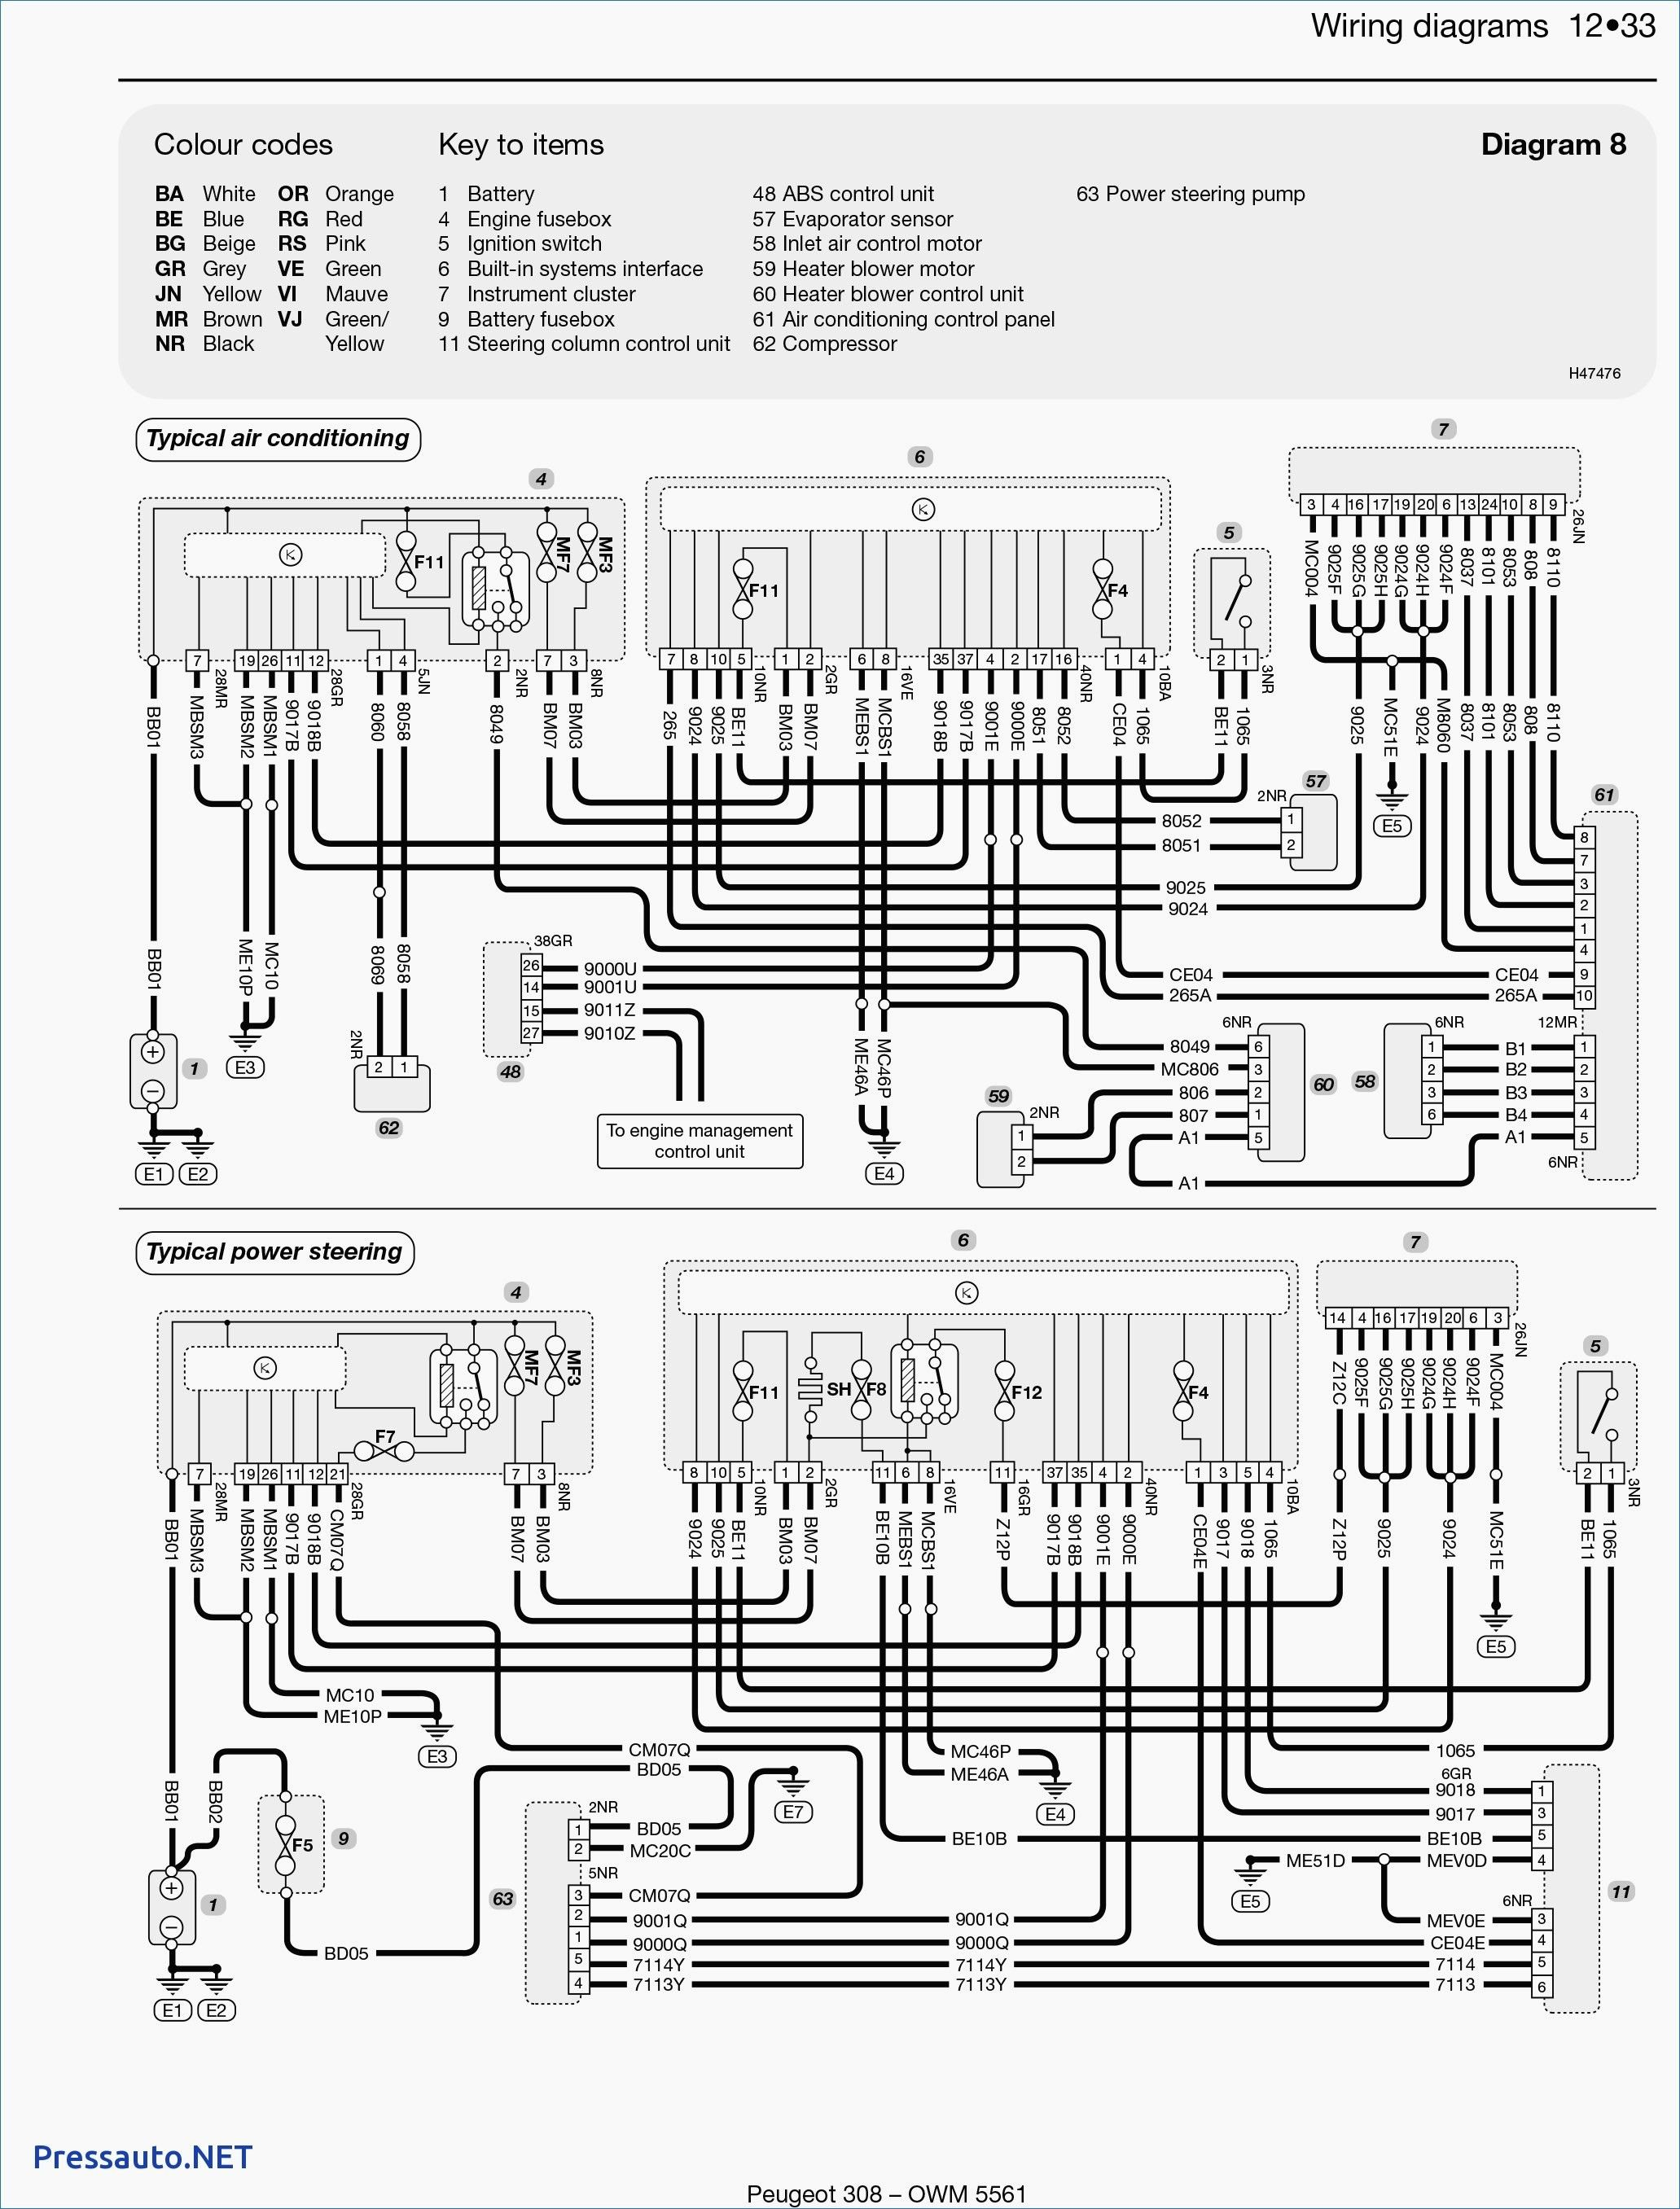 Groovy Peugeot Engine Diagrams Wiring Library Wiring Digital Resources Indicompassionincorg